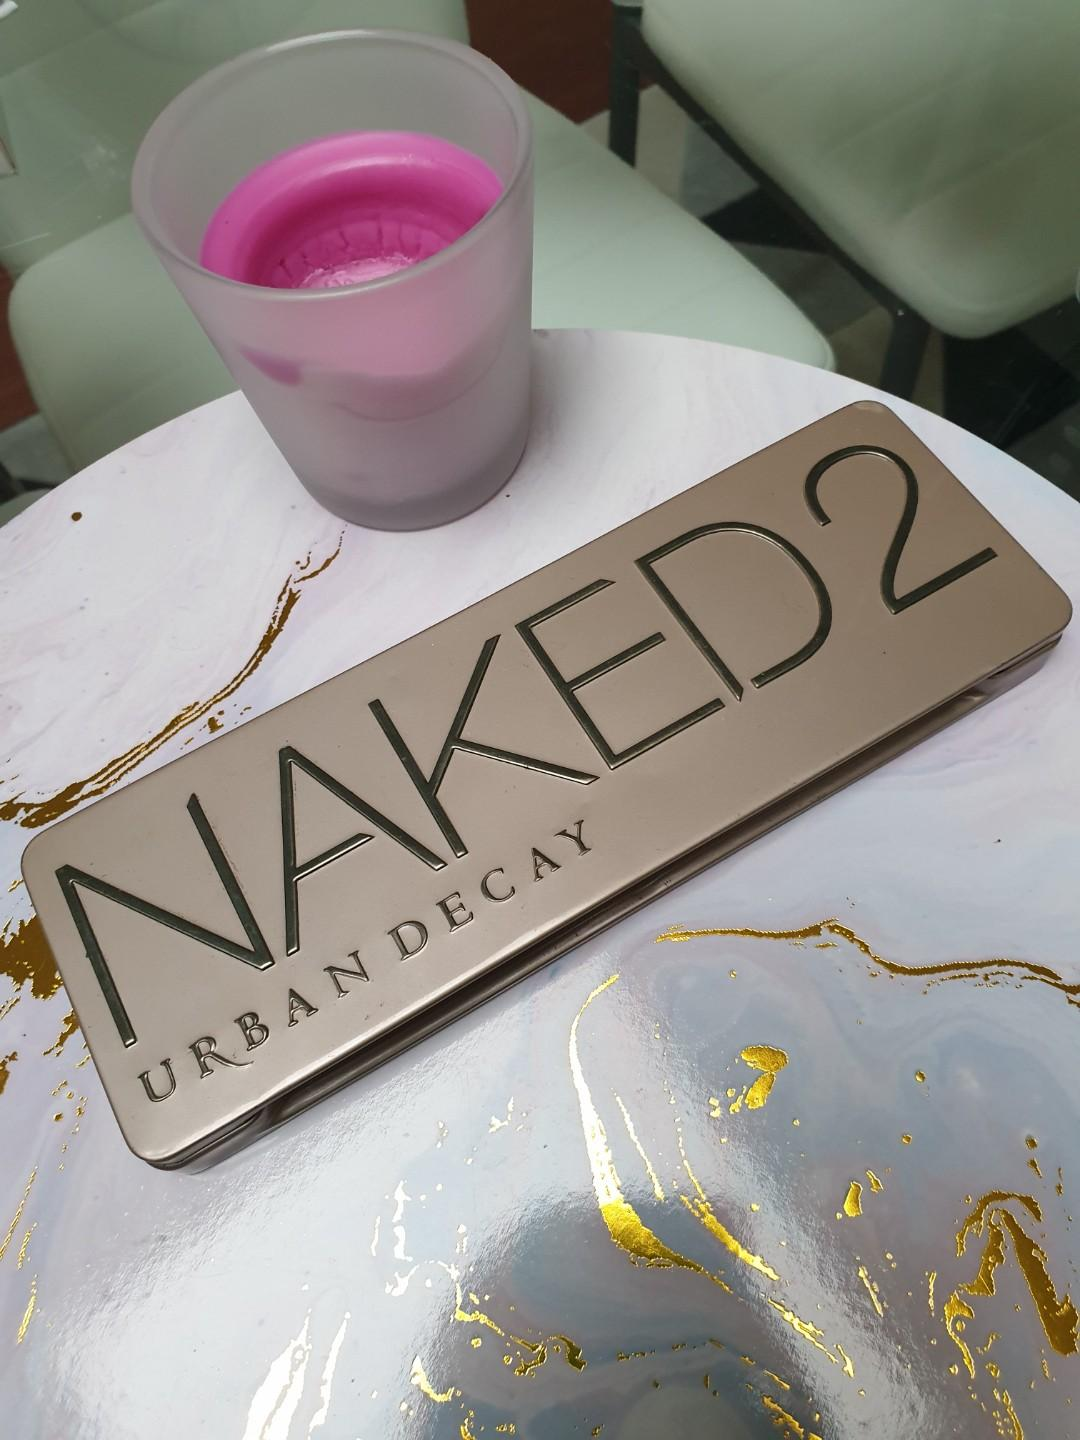 Urban Decay Naked 2 Eyeshadow Palette - Used from Sephora